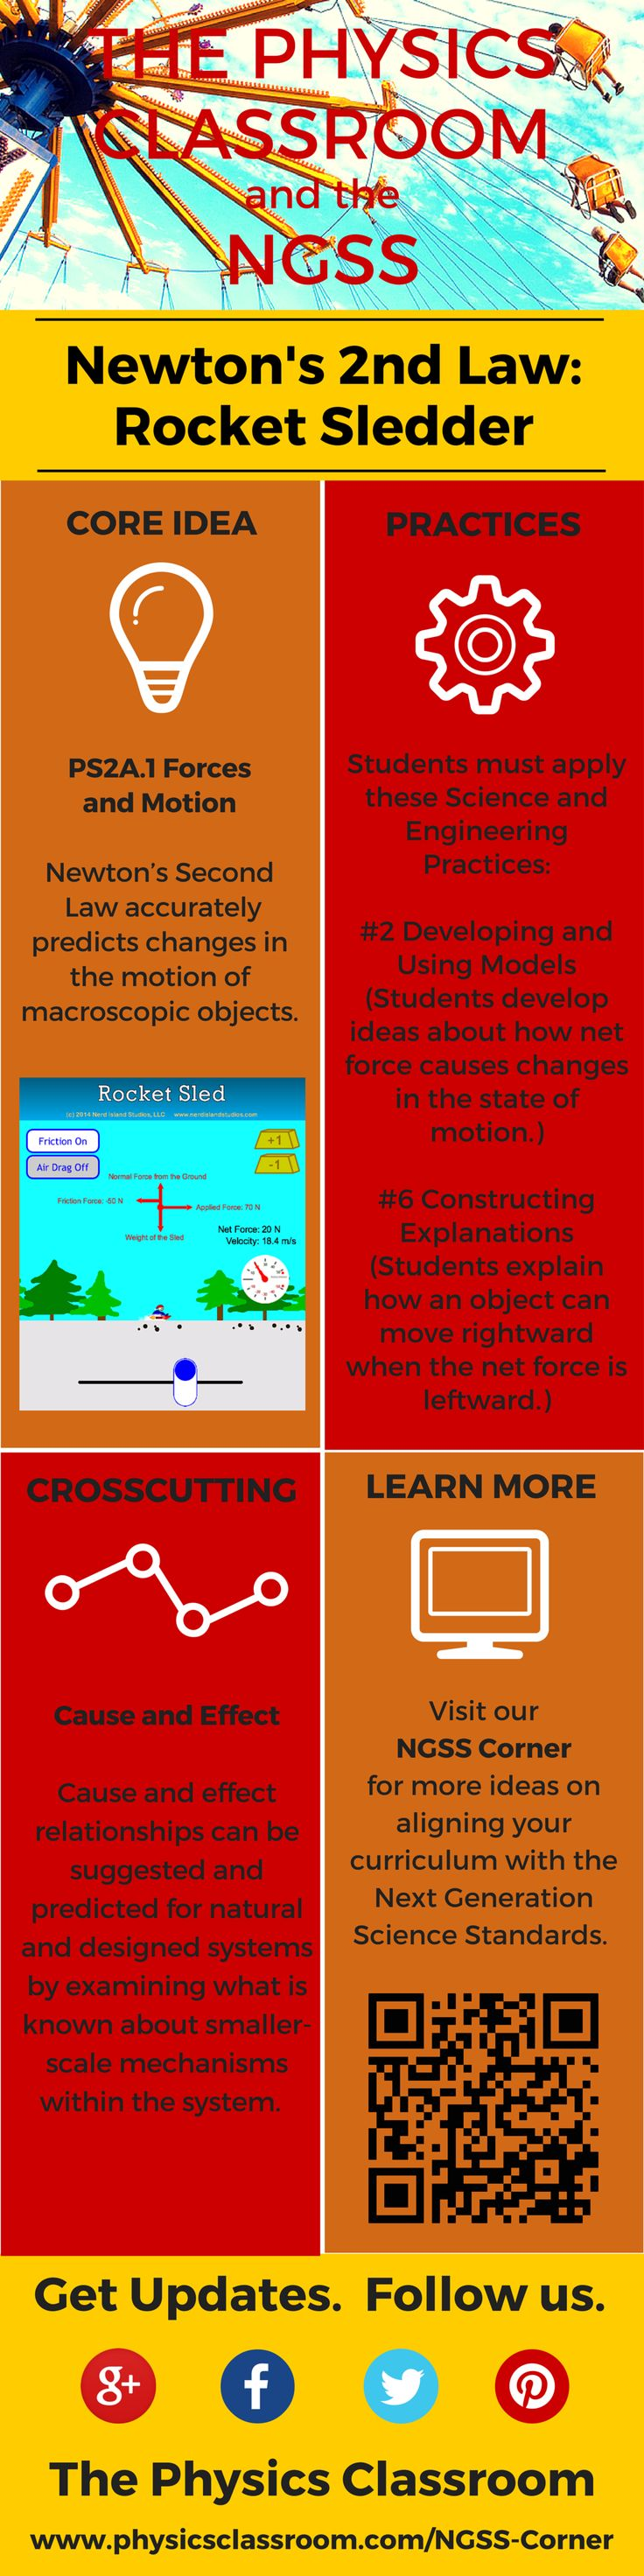 68 best images about NGSS and Physics on Pinterest | Physics ...